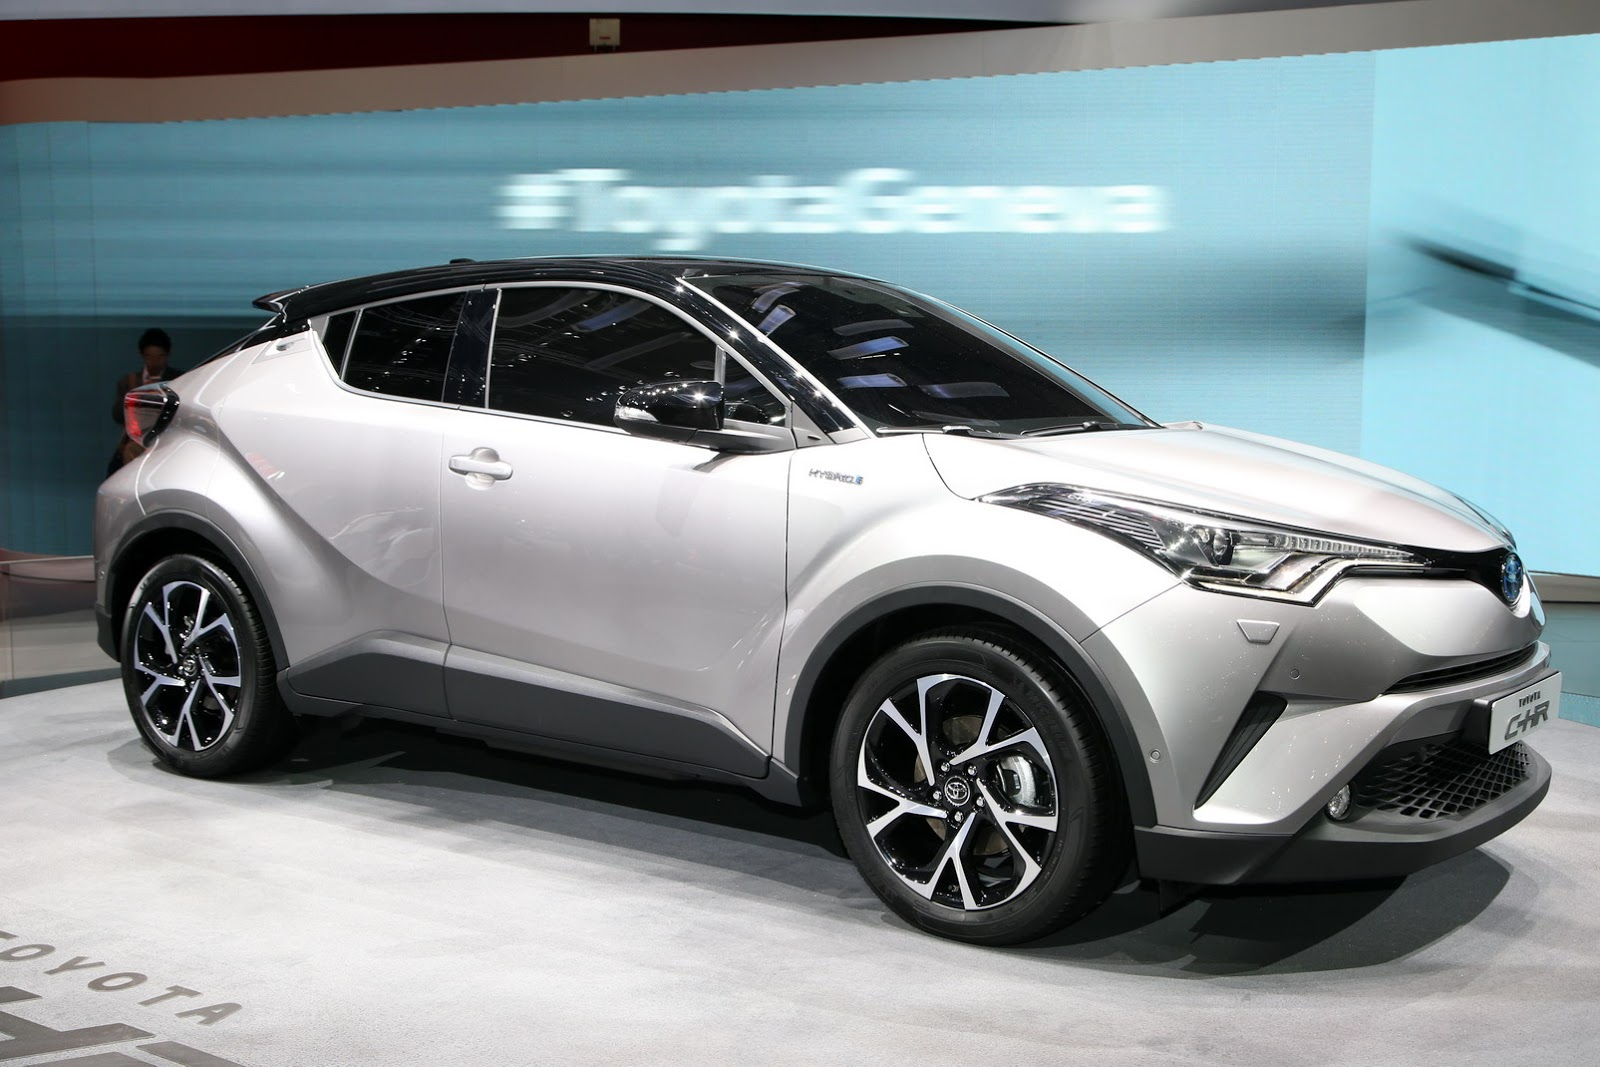 new toyota c hr gets 1 2l turbo 2 0l and 1 8l hybrid powertrains new pics. Black Bedroom Furniture Sets. Home Design Ideas